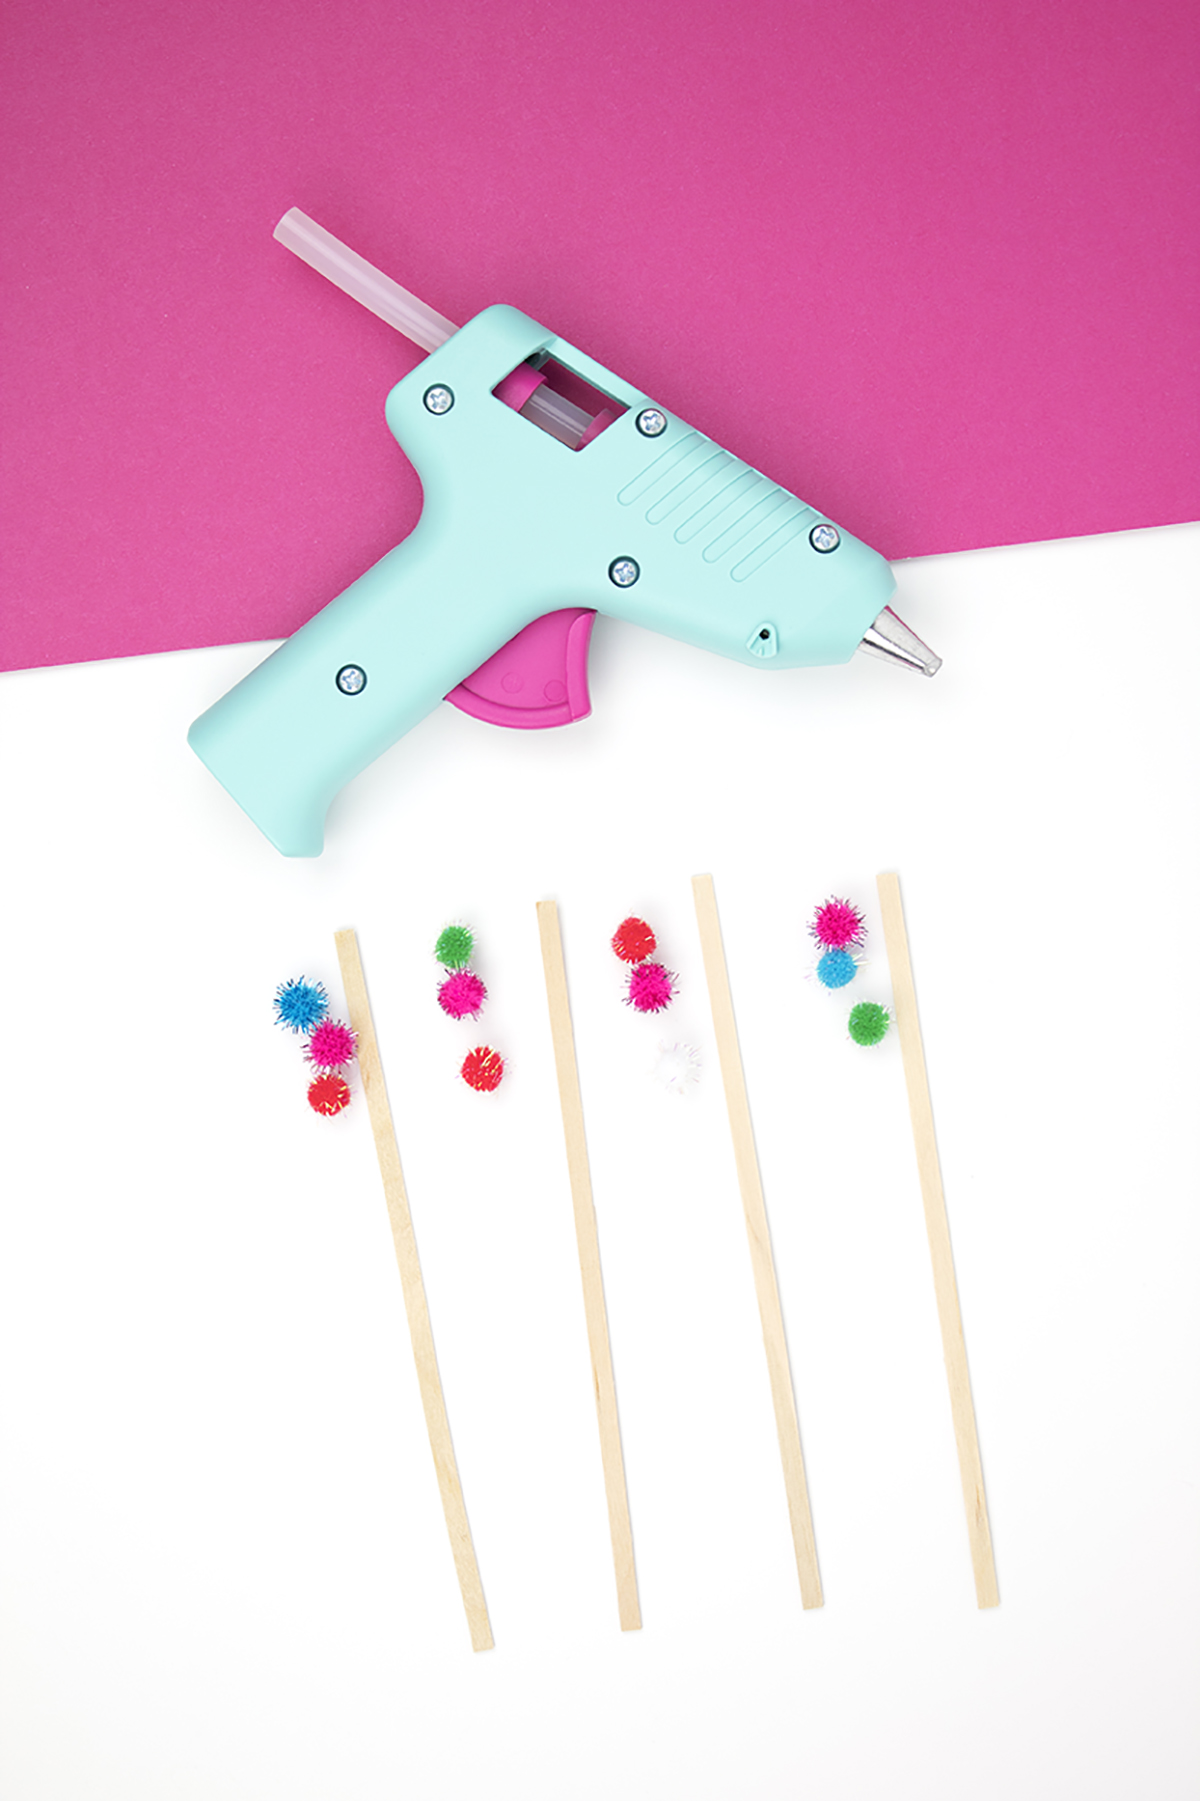 Want to get into the Ho-Ho-Holiday spirit? Grab these drink stirrers for your Christmas spirits (hah, see what I did there?!) They're really easy to make for your Christmas party or cookie exchange. Click to make your own right now! #drinkstirrers #drinkstirrersdiy #christmascrafts